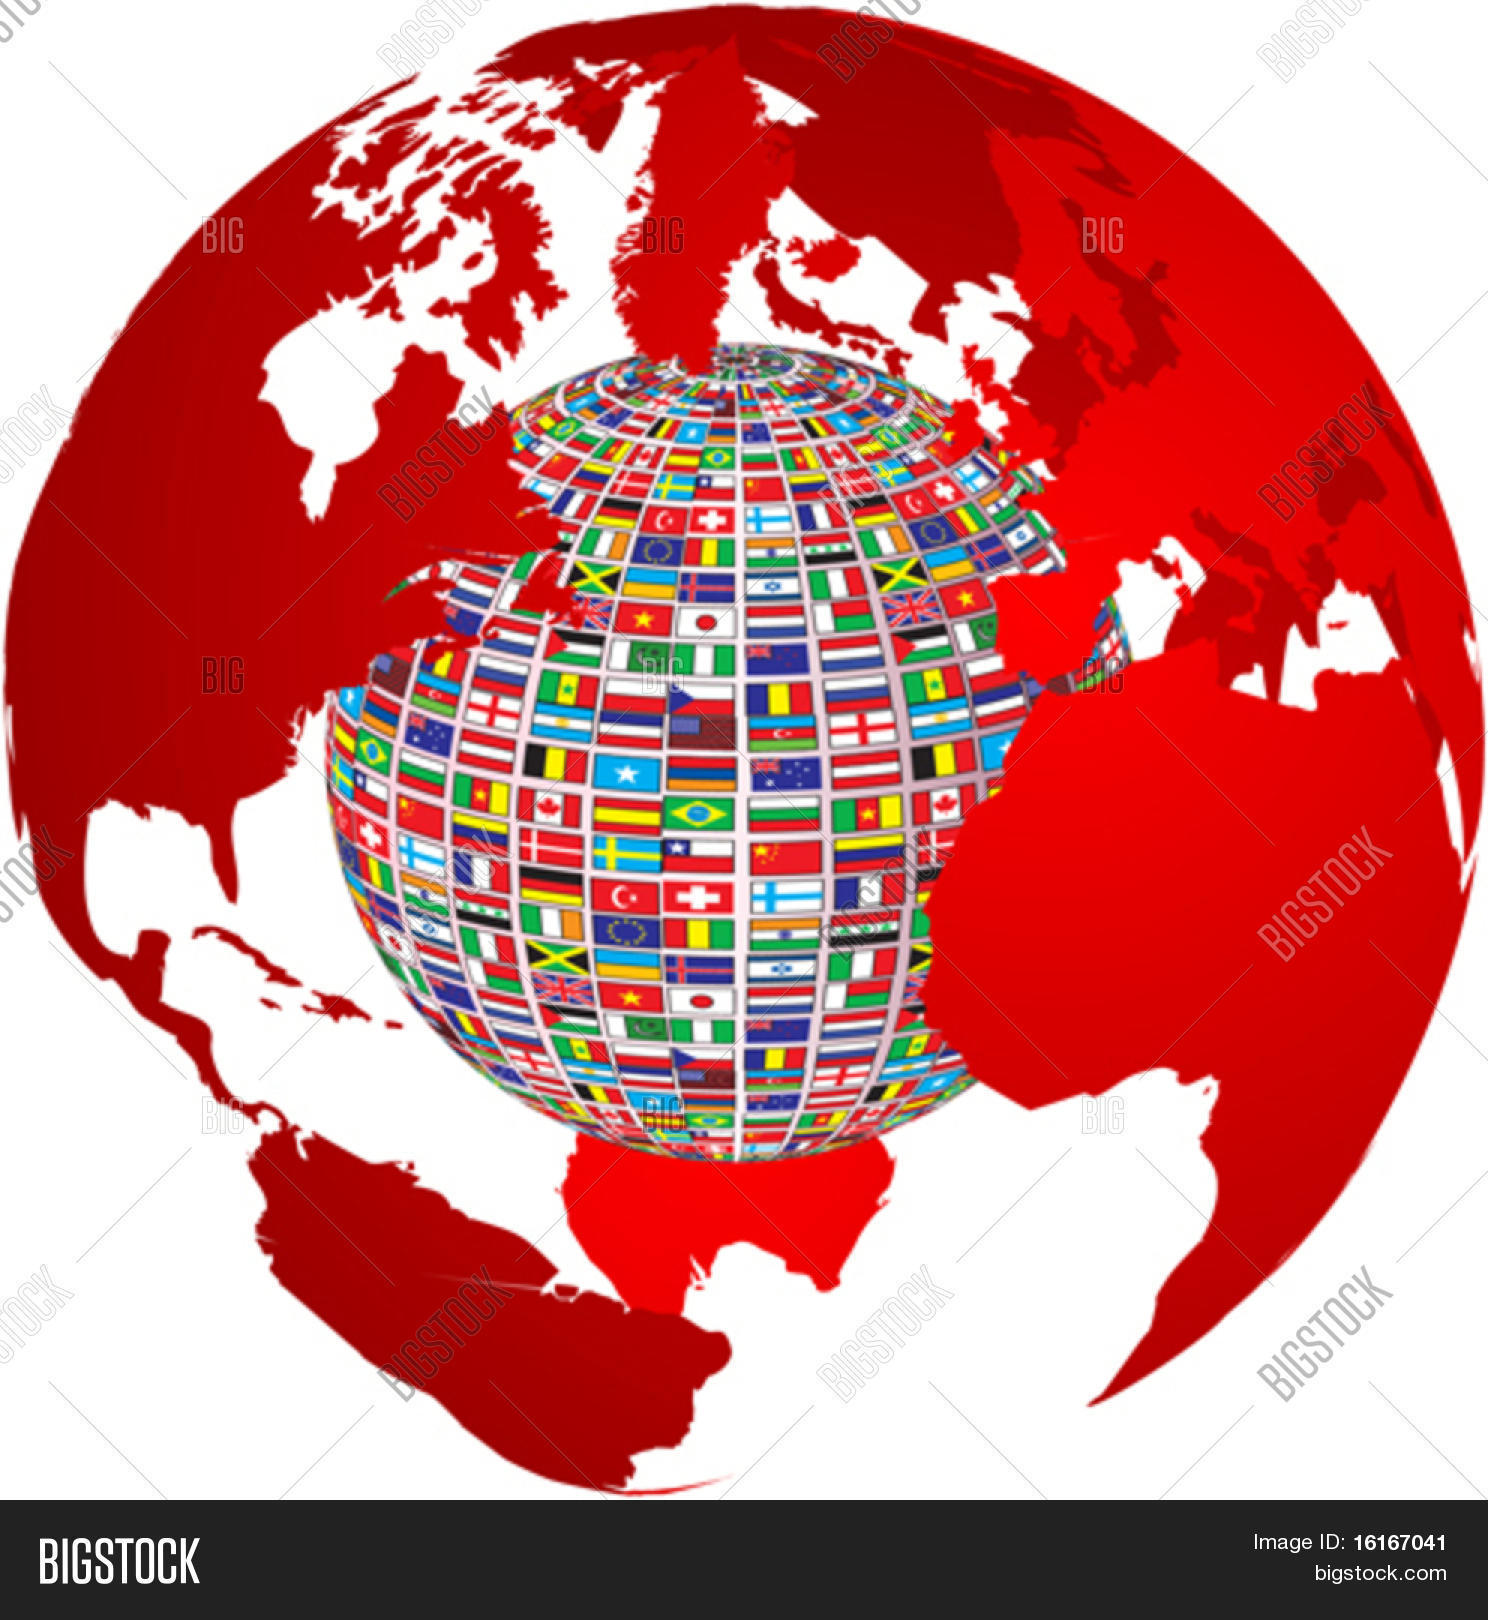 Transparency world map country vector photo bigstock transparency world map with country flags on it gumiabroncs Gallery